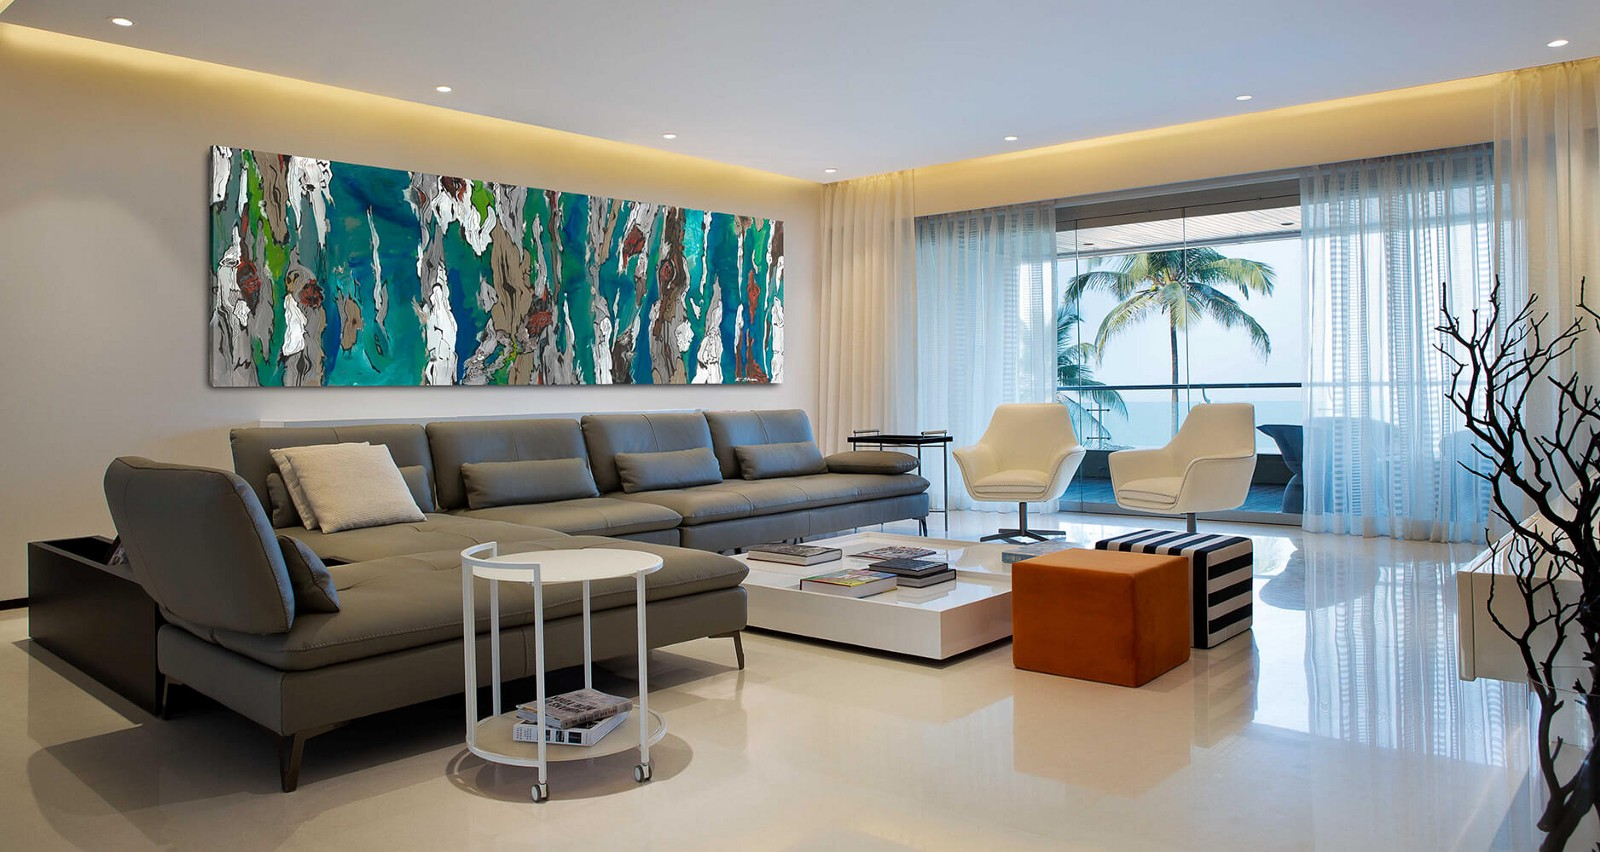 Consider These Tips To Find The Best Interior Designers In Mumbai.